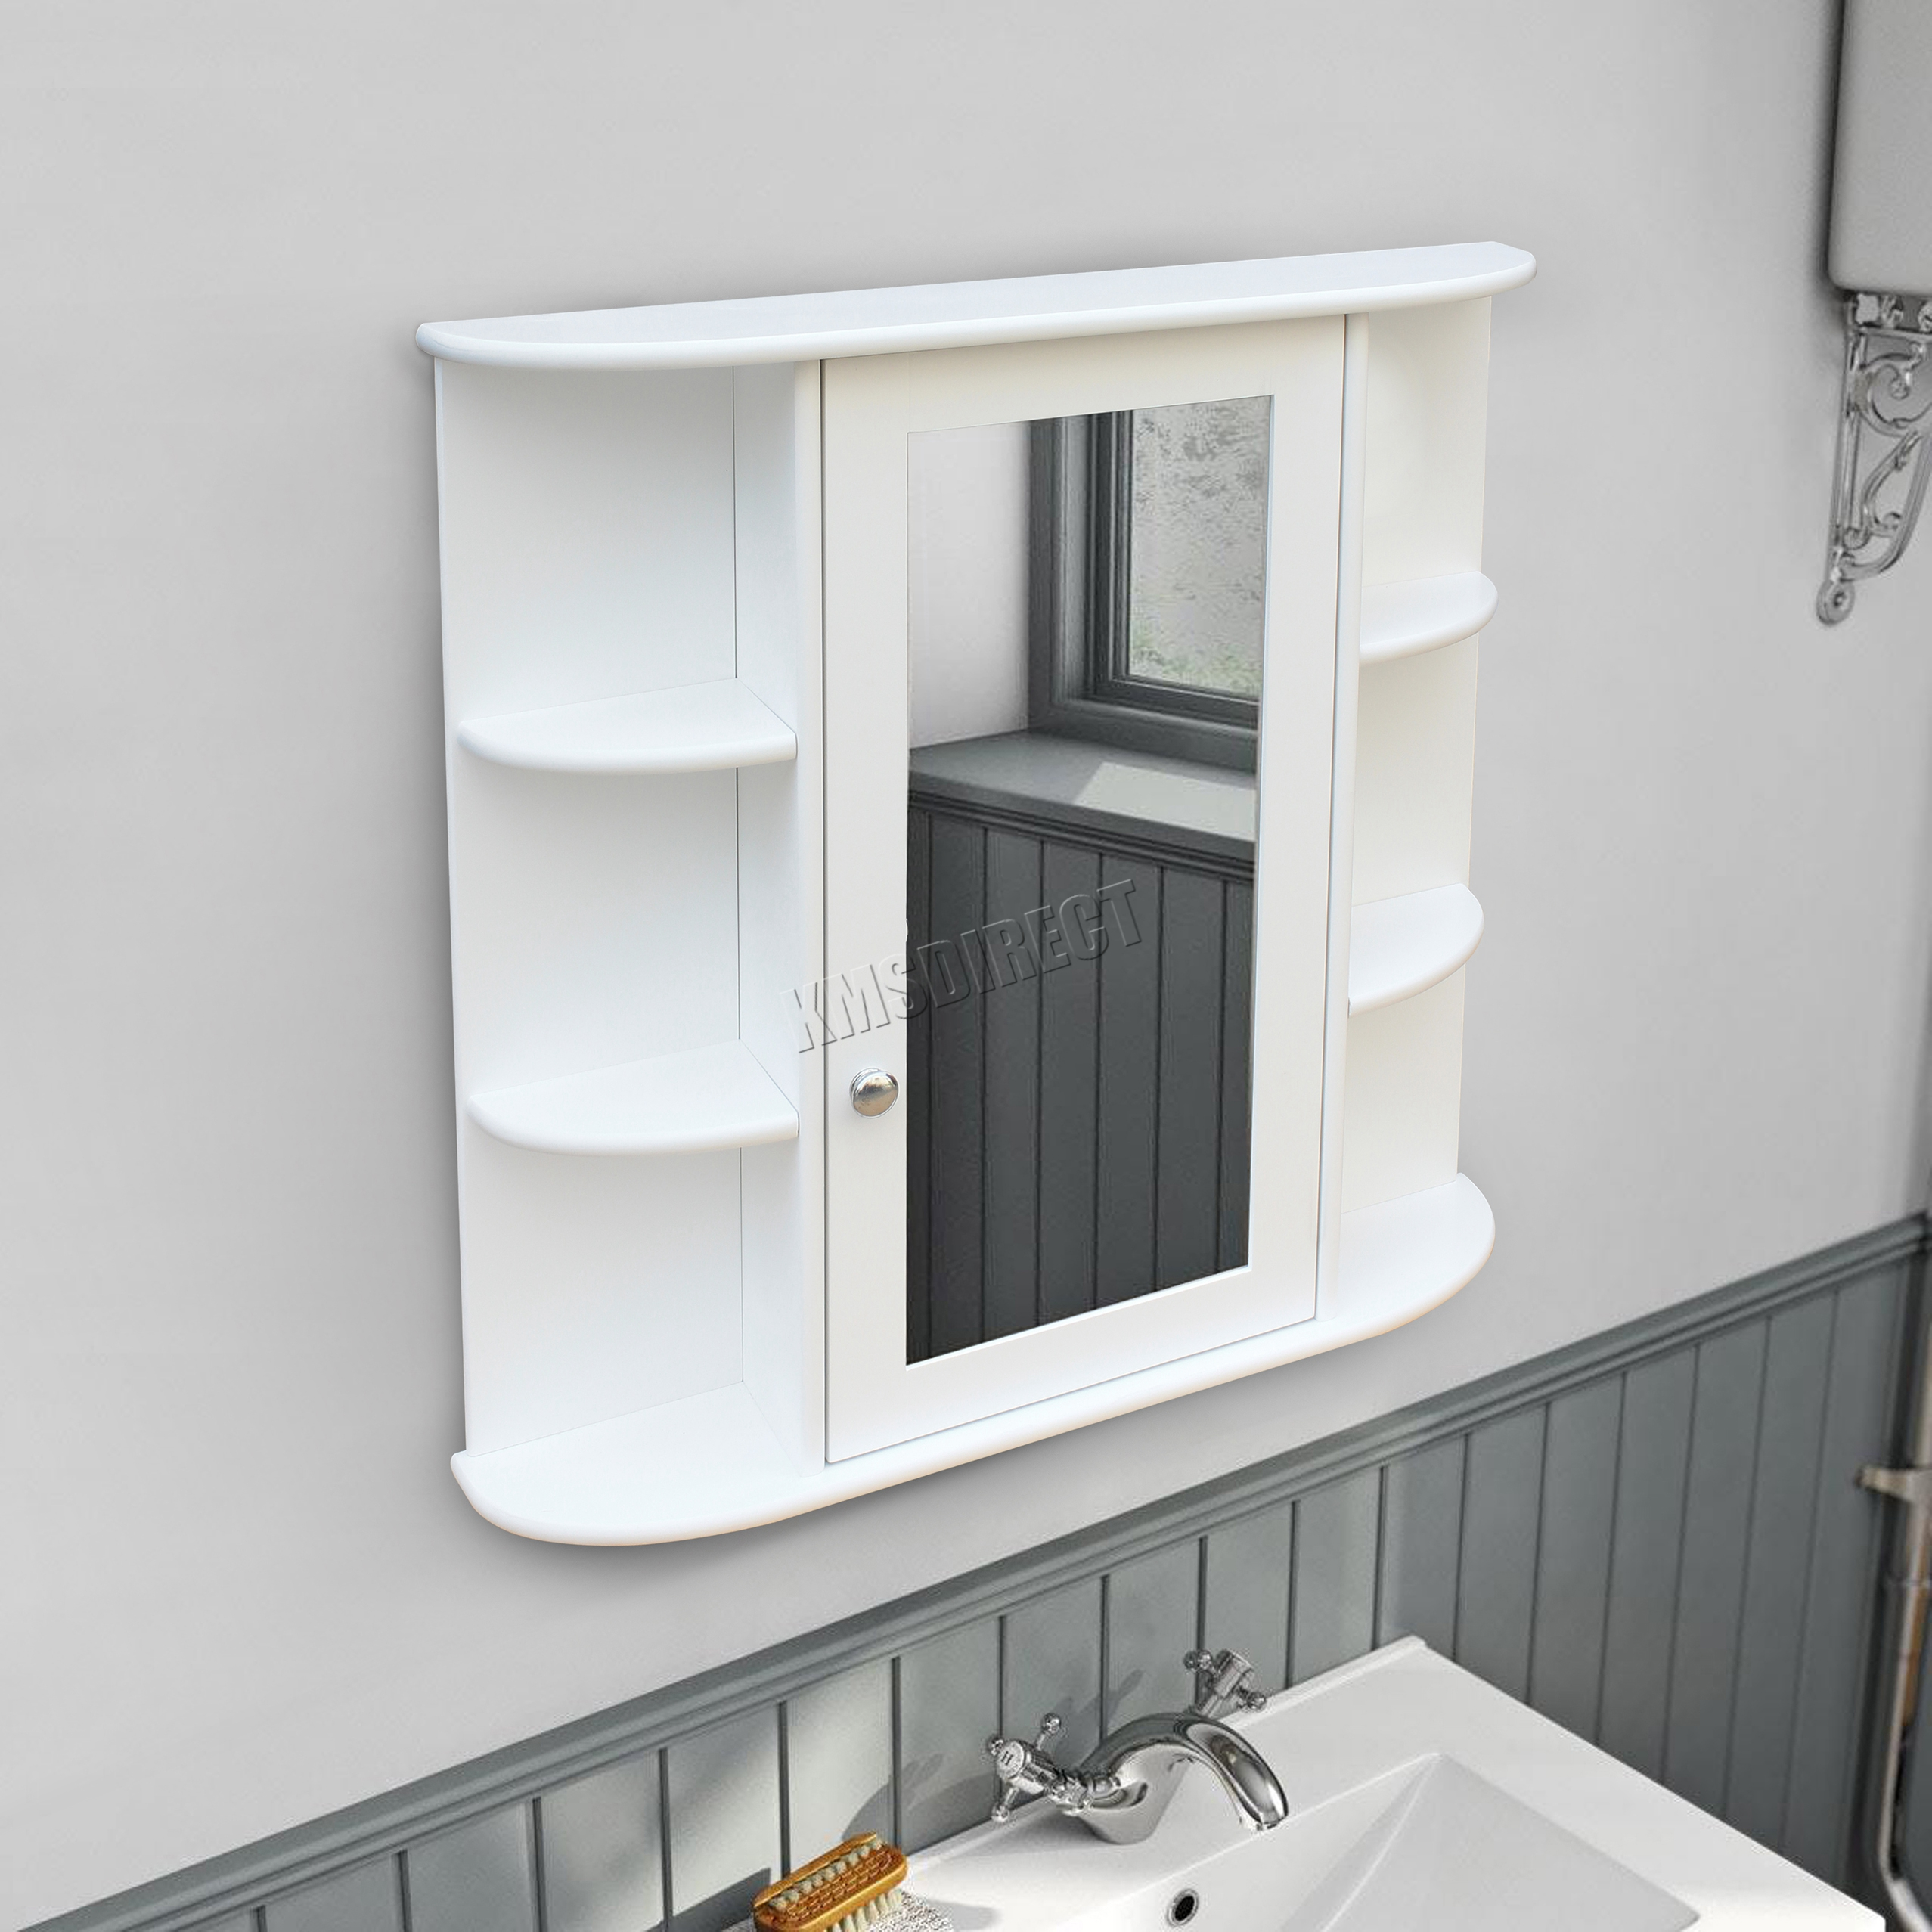 Westwood wall mount mirror bathroom cabinet unit storage cupboard with shelf ebay for Bathroom mirror cupboard